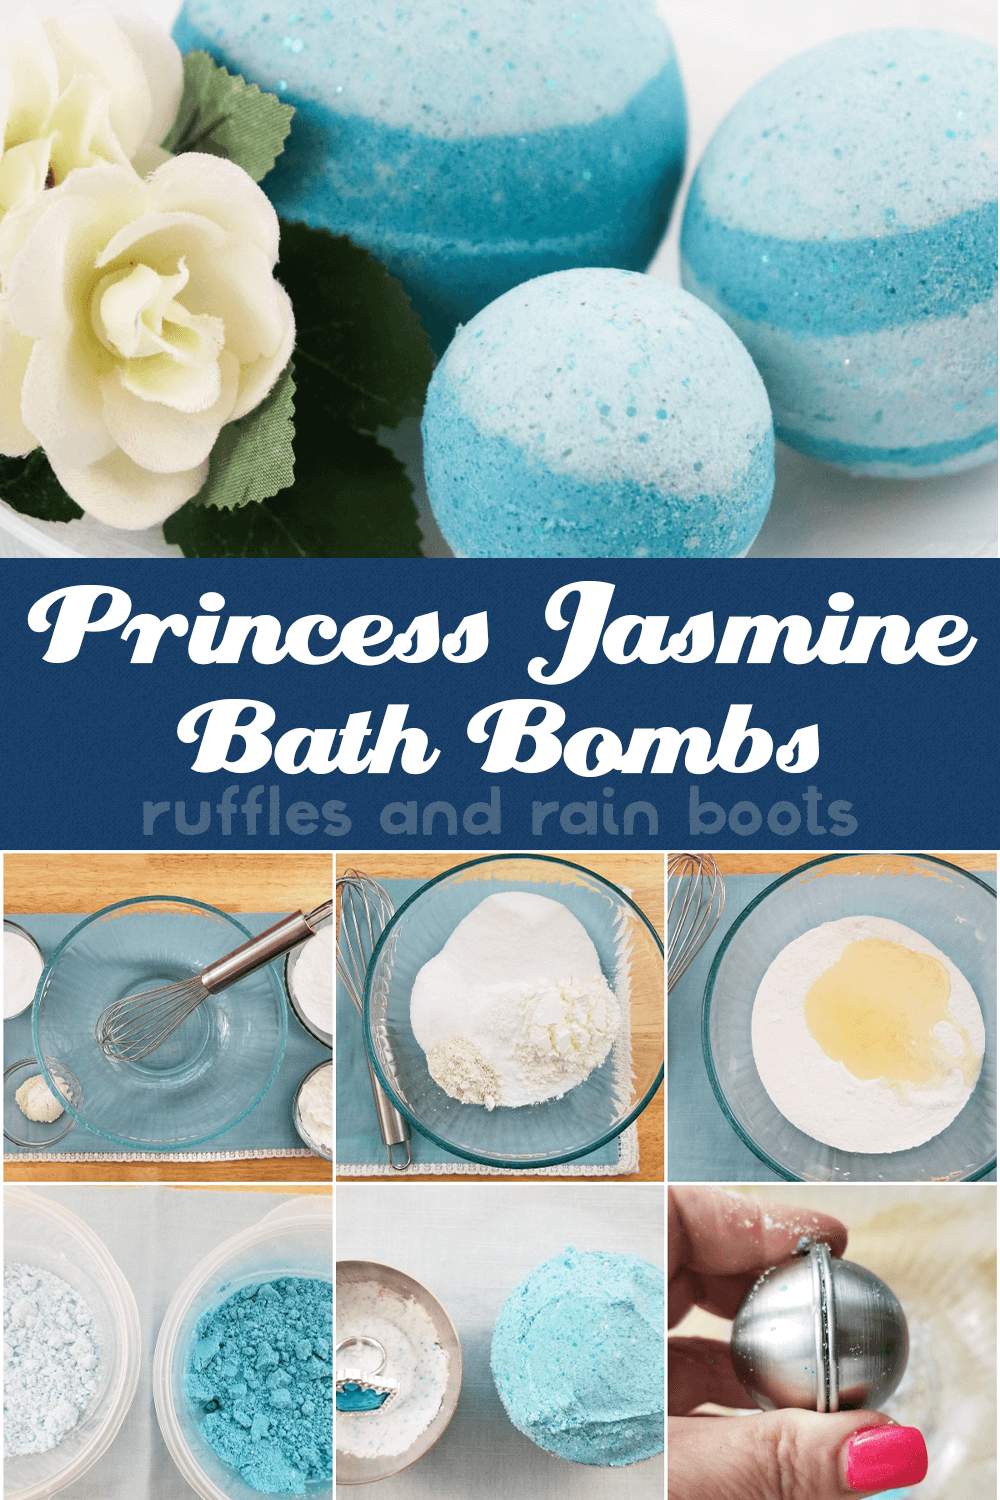 photo collage of princess jasmine bath bomb recipe with text which reads princess jasmine bath bombs